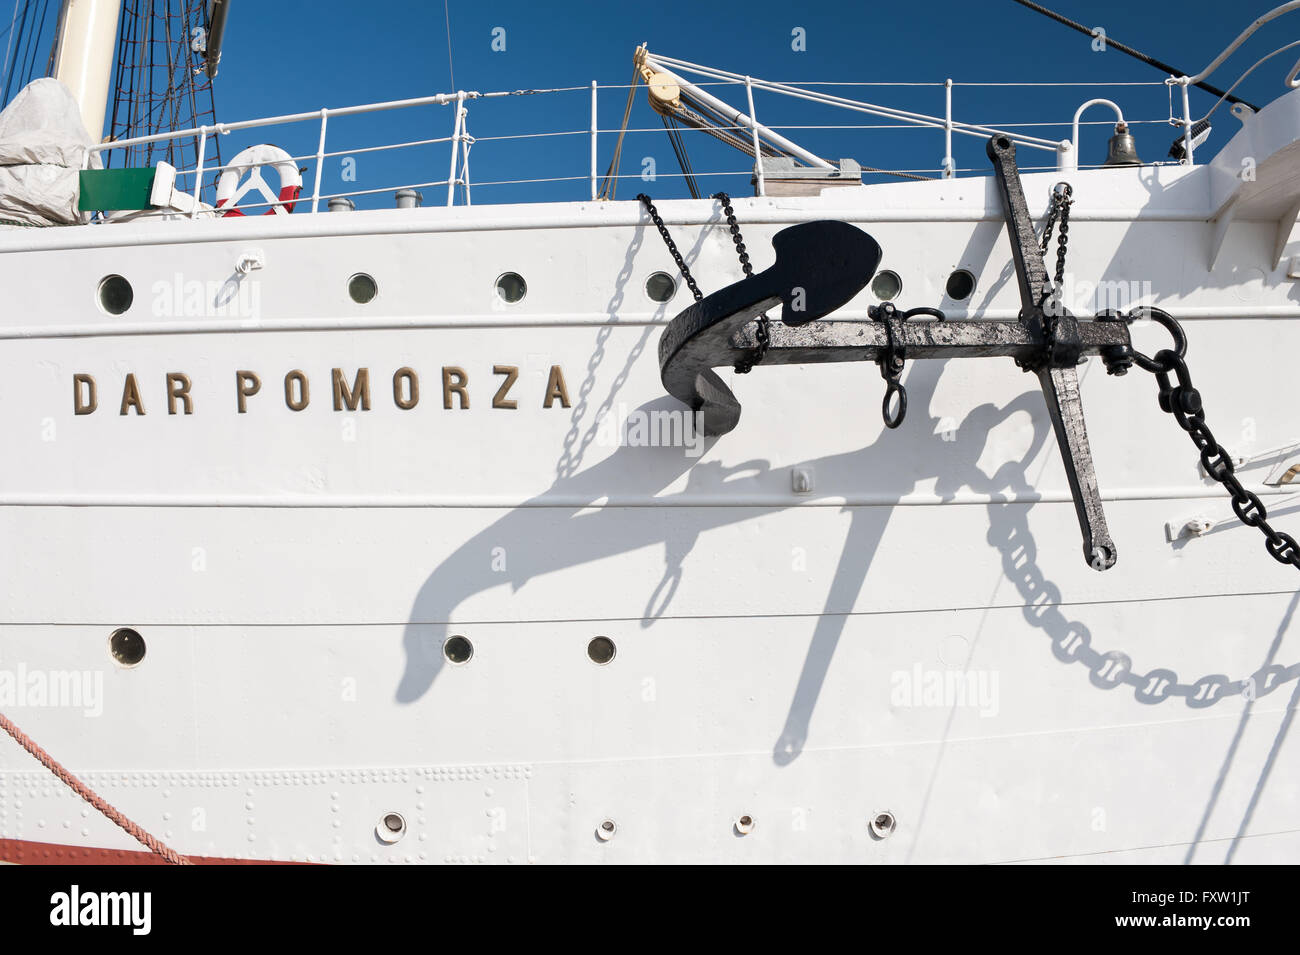 Anchor on the Dar Pomorza ship side in Gdynia, Poland, Europe, the Baltic Sea, legendary The White Frigate Polish - Stock Image